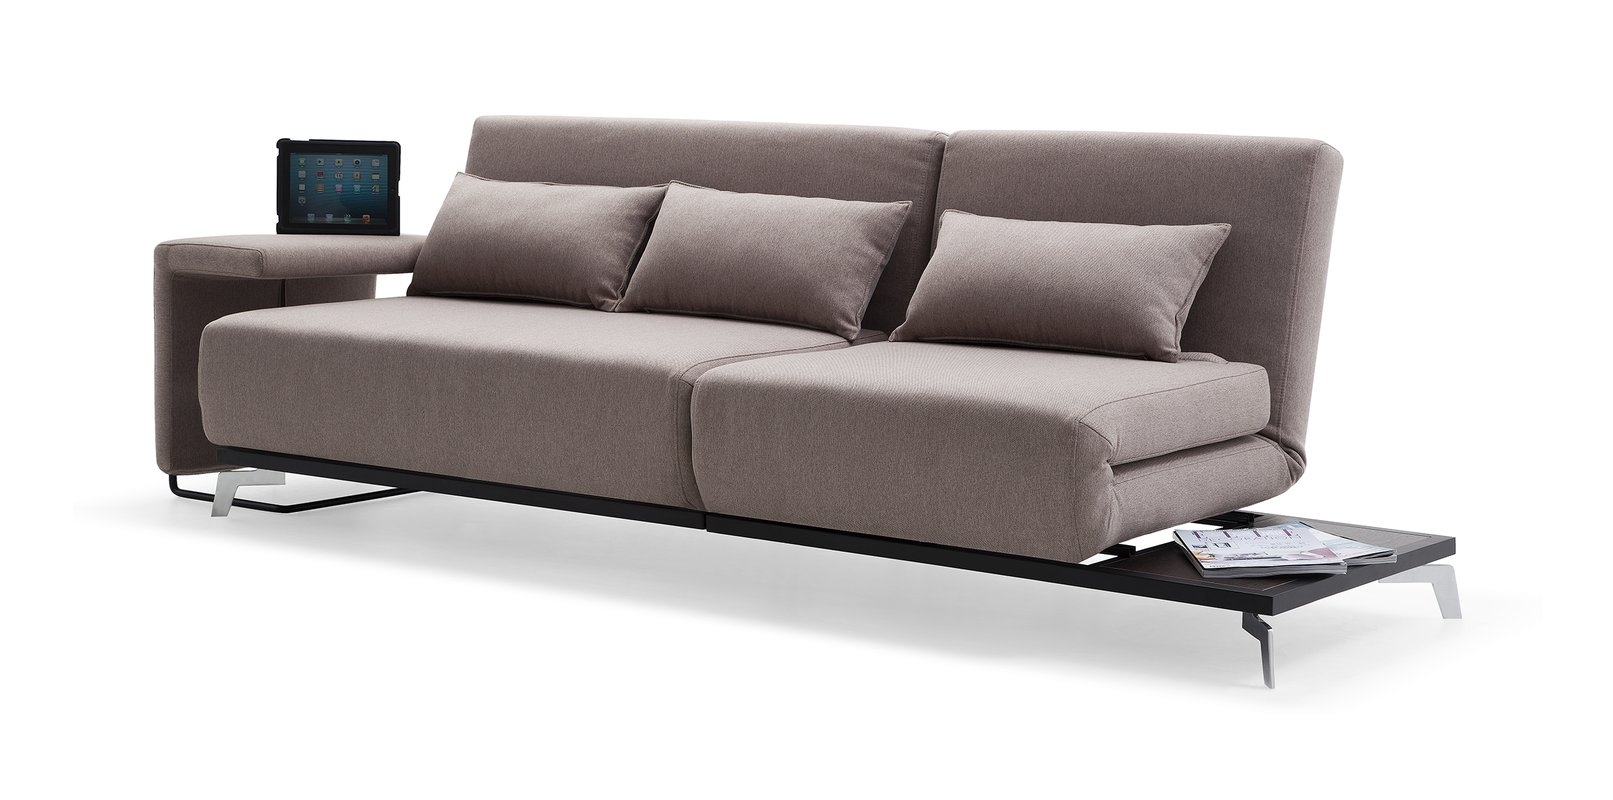 Brayden Studio Demelo Convertible Sofa & Reviews | Wayfair Regarding Convertible Sofas (Image 1 of 10)